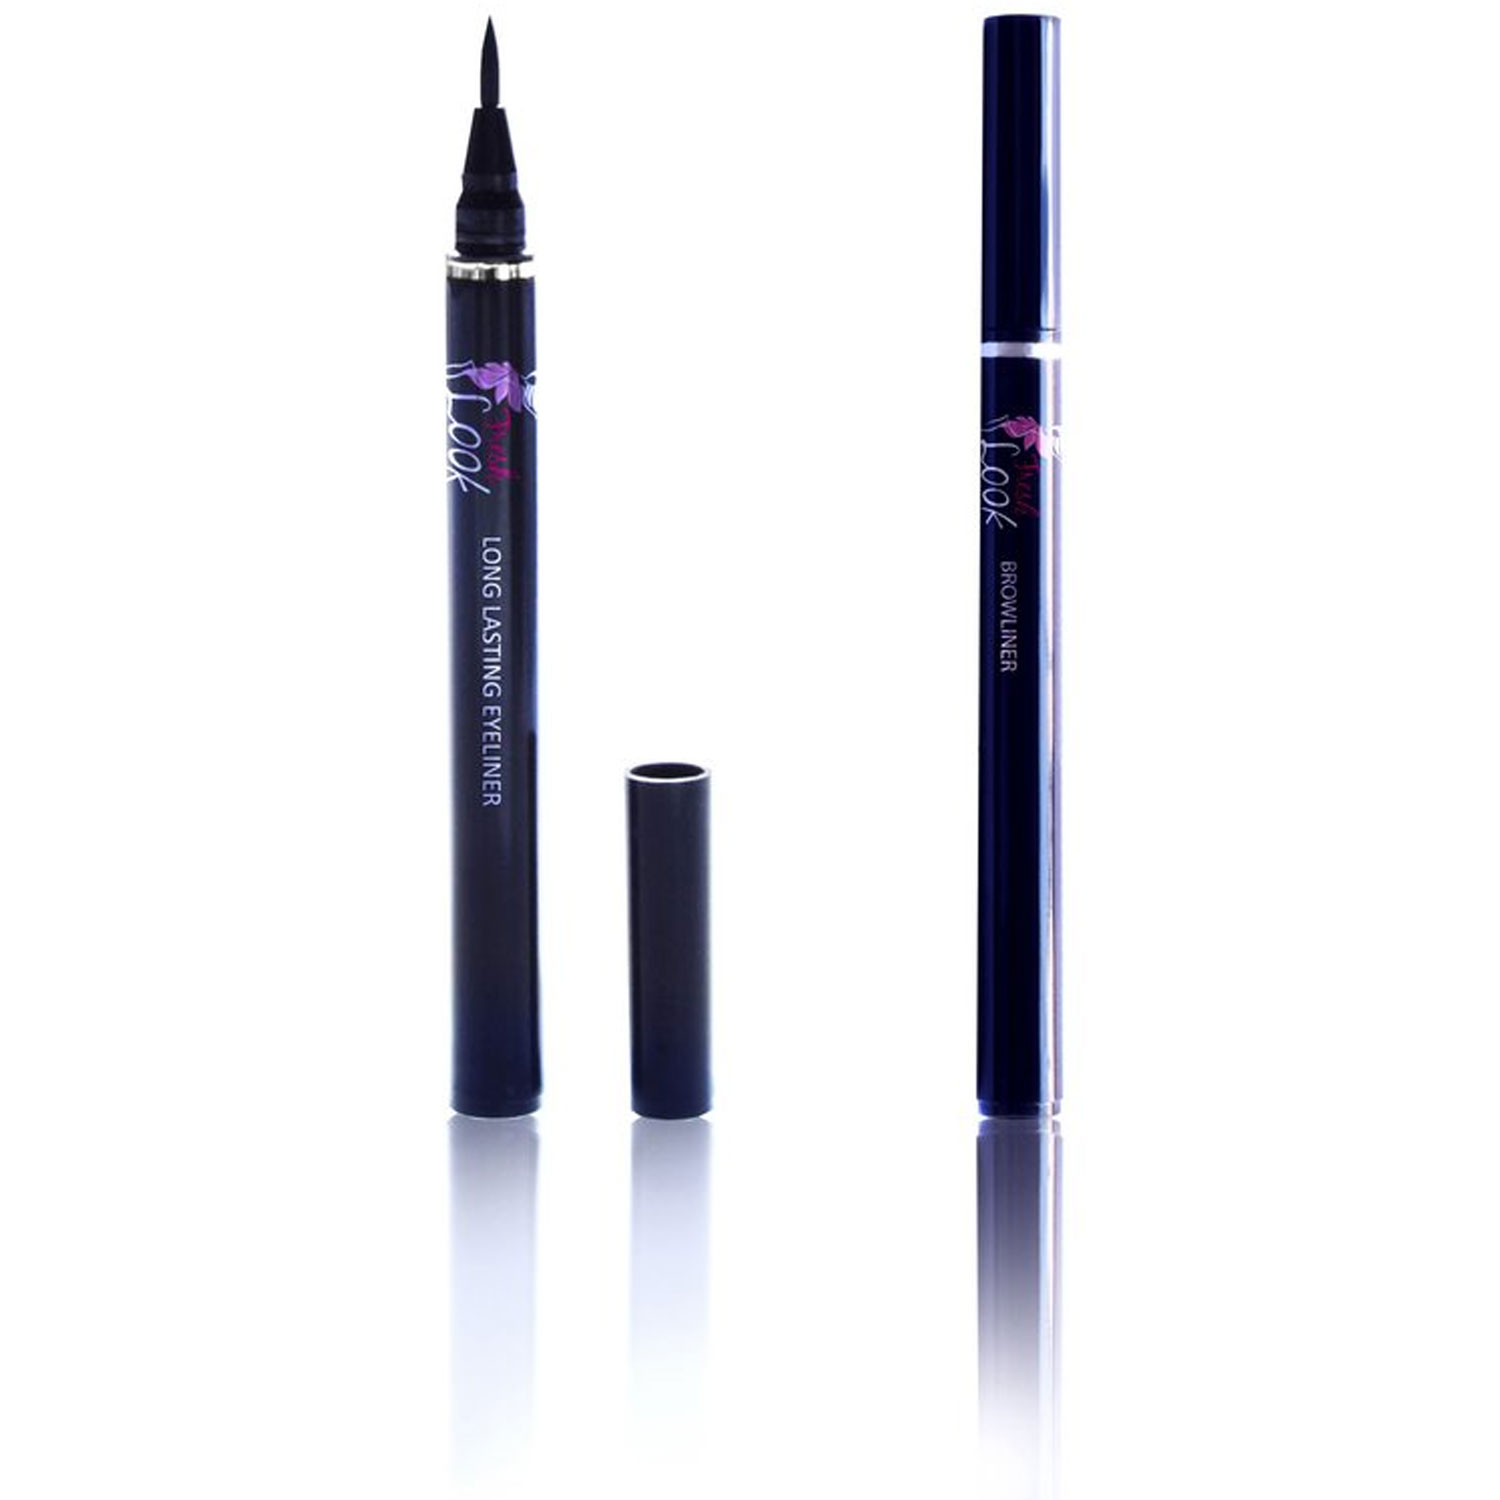 Freshlook Eyeliner and Brow Liner Set (2-Piece )